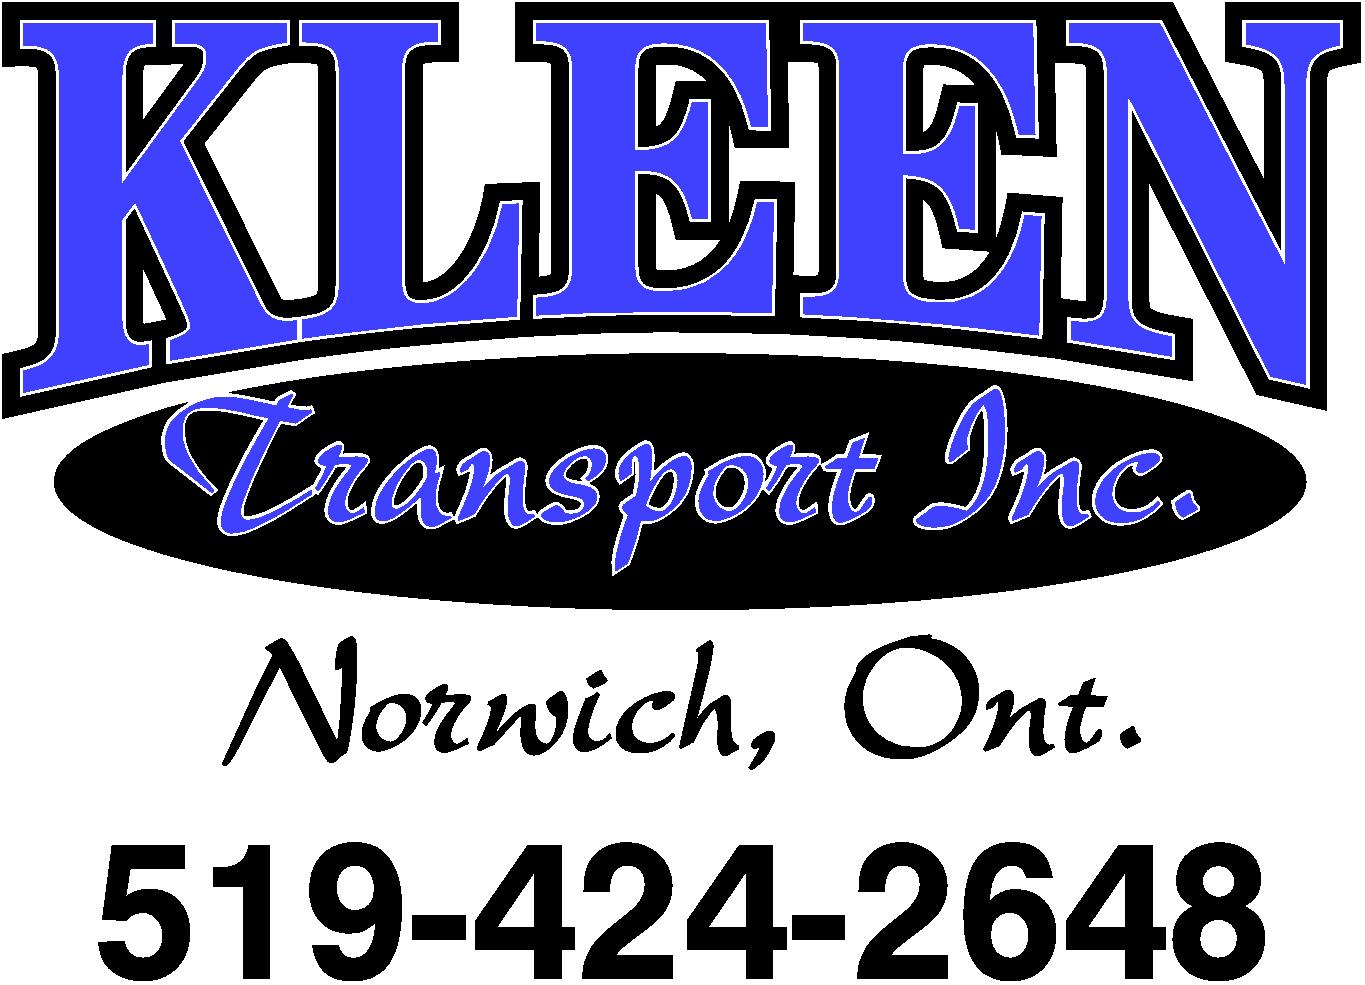 Kleen Transport Inc.